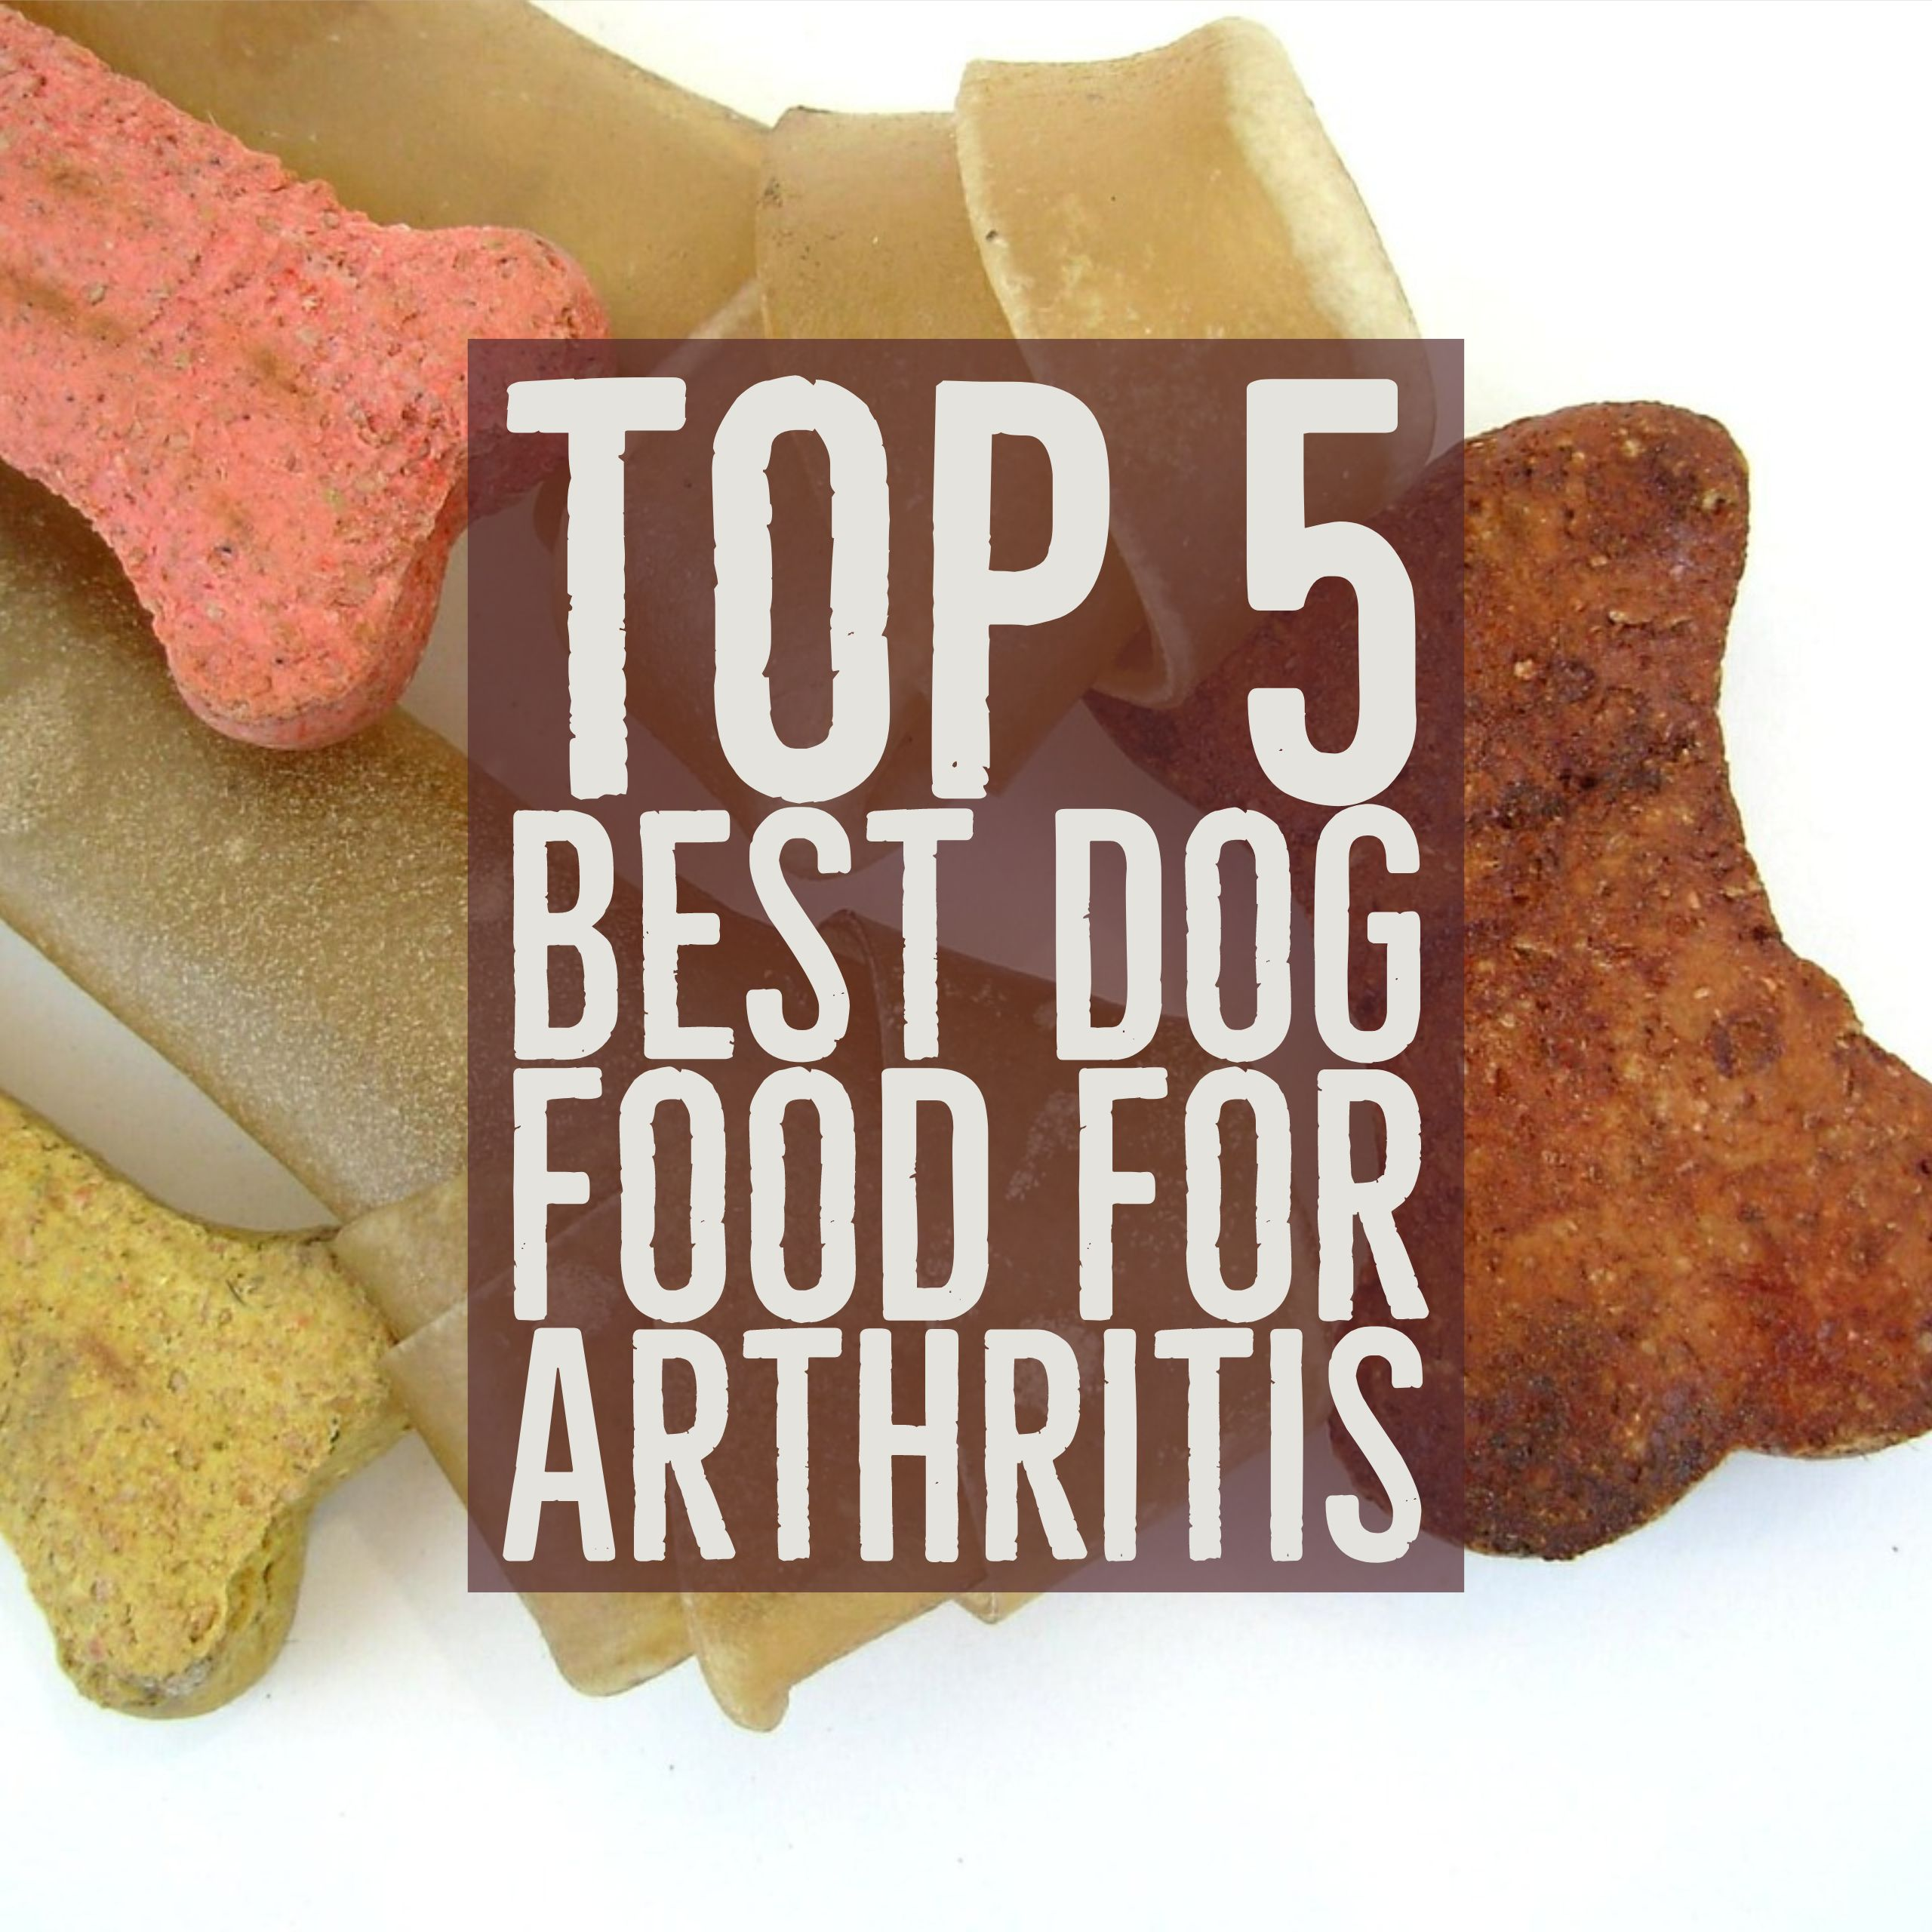 Top 5 Best Dog Food For Arthritis Dogs Dogfood Dogcare